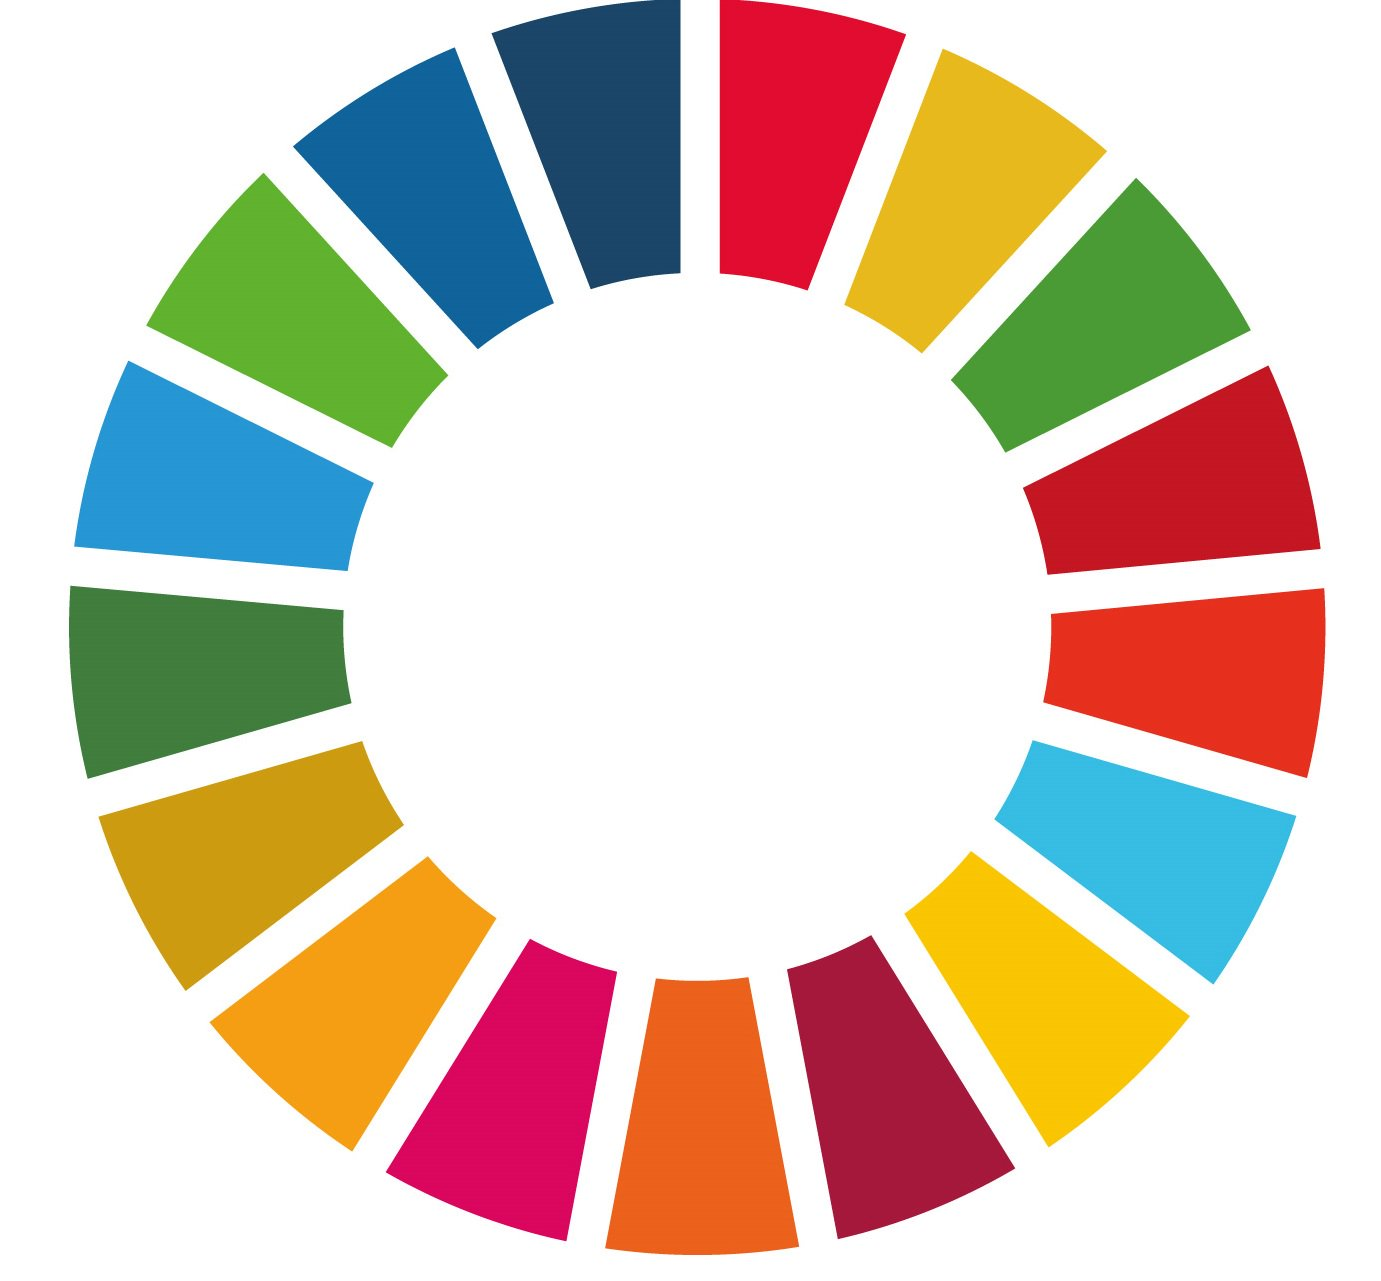 Know the challenges & measure progress in achieving the #SDGs w/ the #SDGIndex & Dashboards https://t.co/WrEkeSoA8U https://t.co/44G5fJCdNP